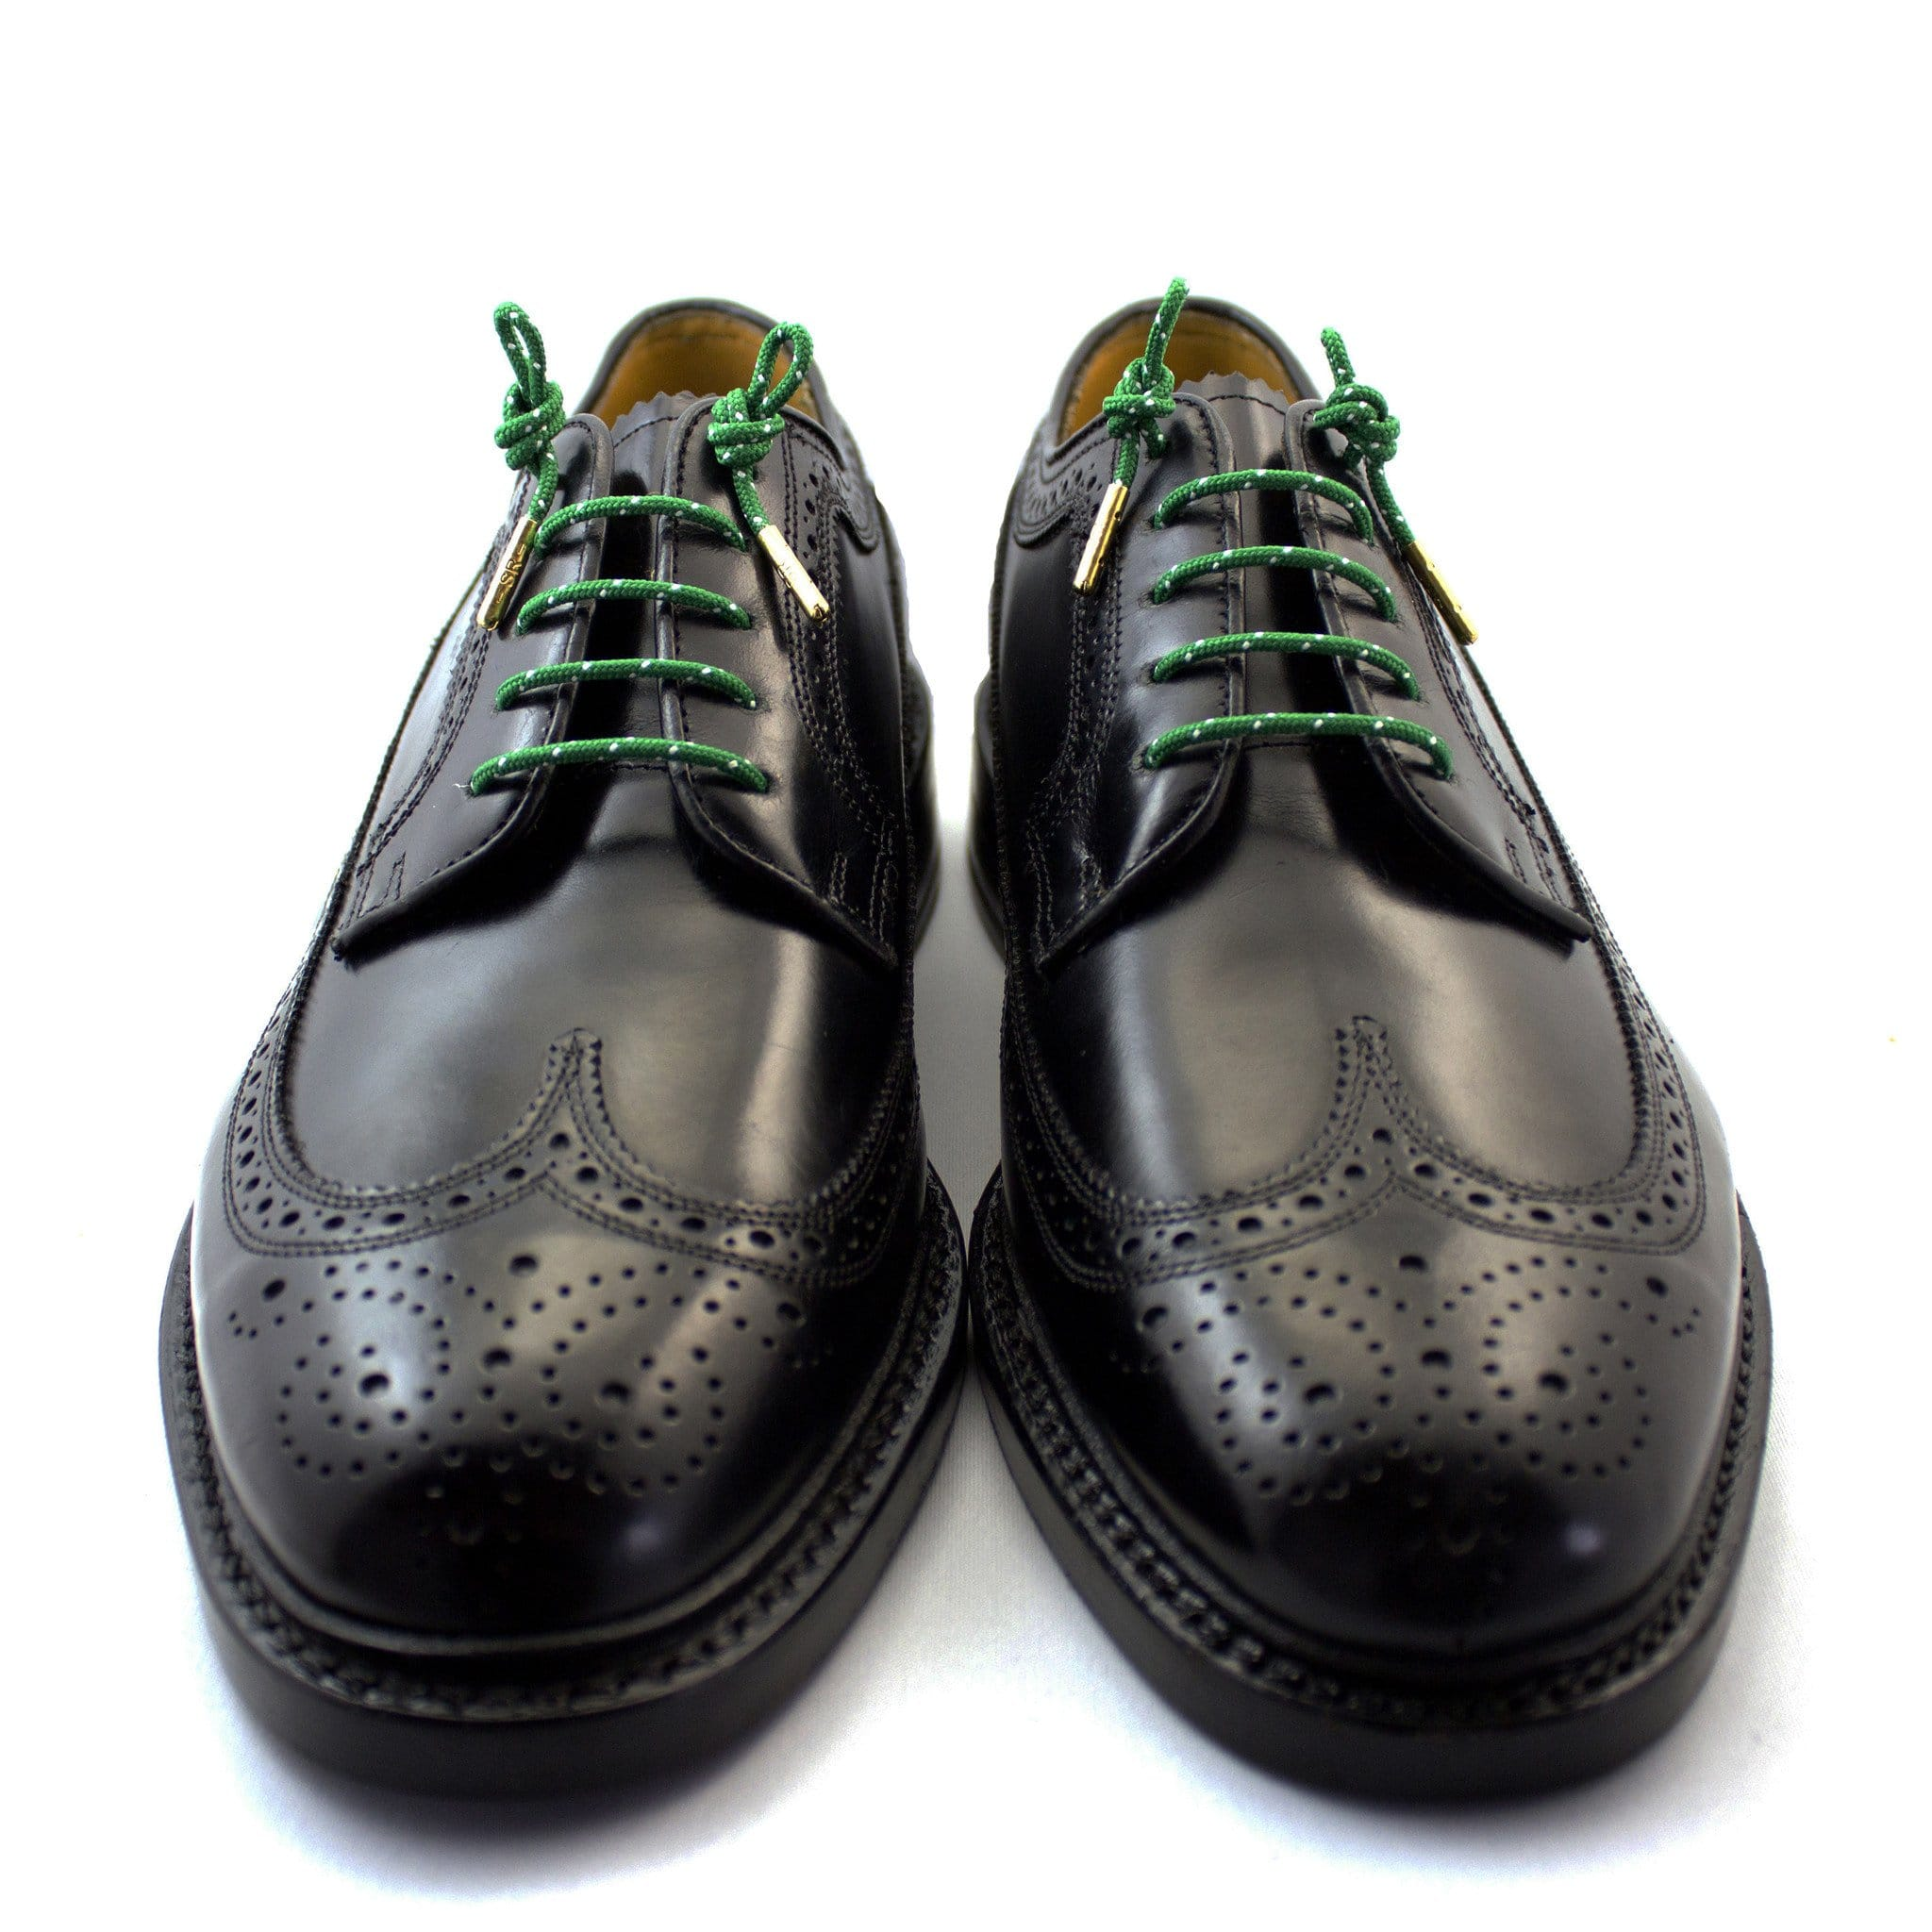 "Green and white dots laces for dress shoes, Length: 27""/69cm-Stolen Riches"